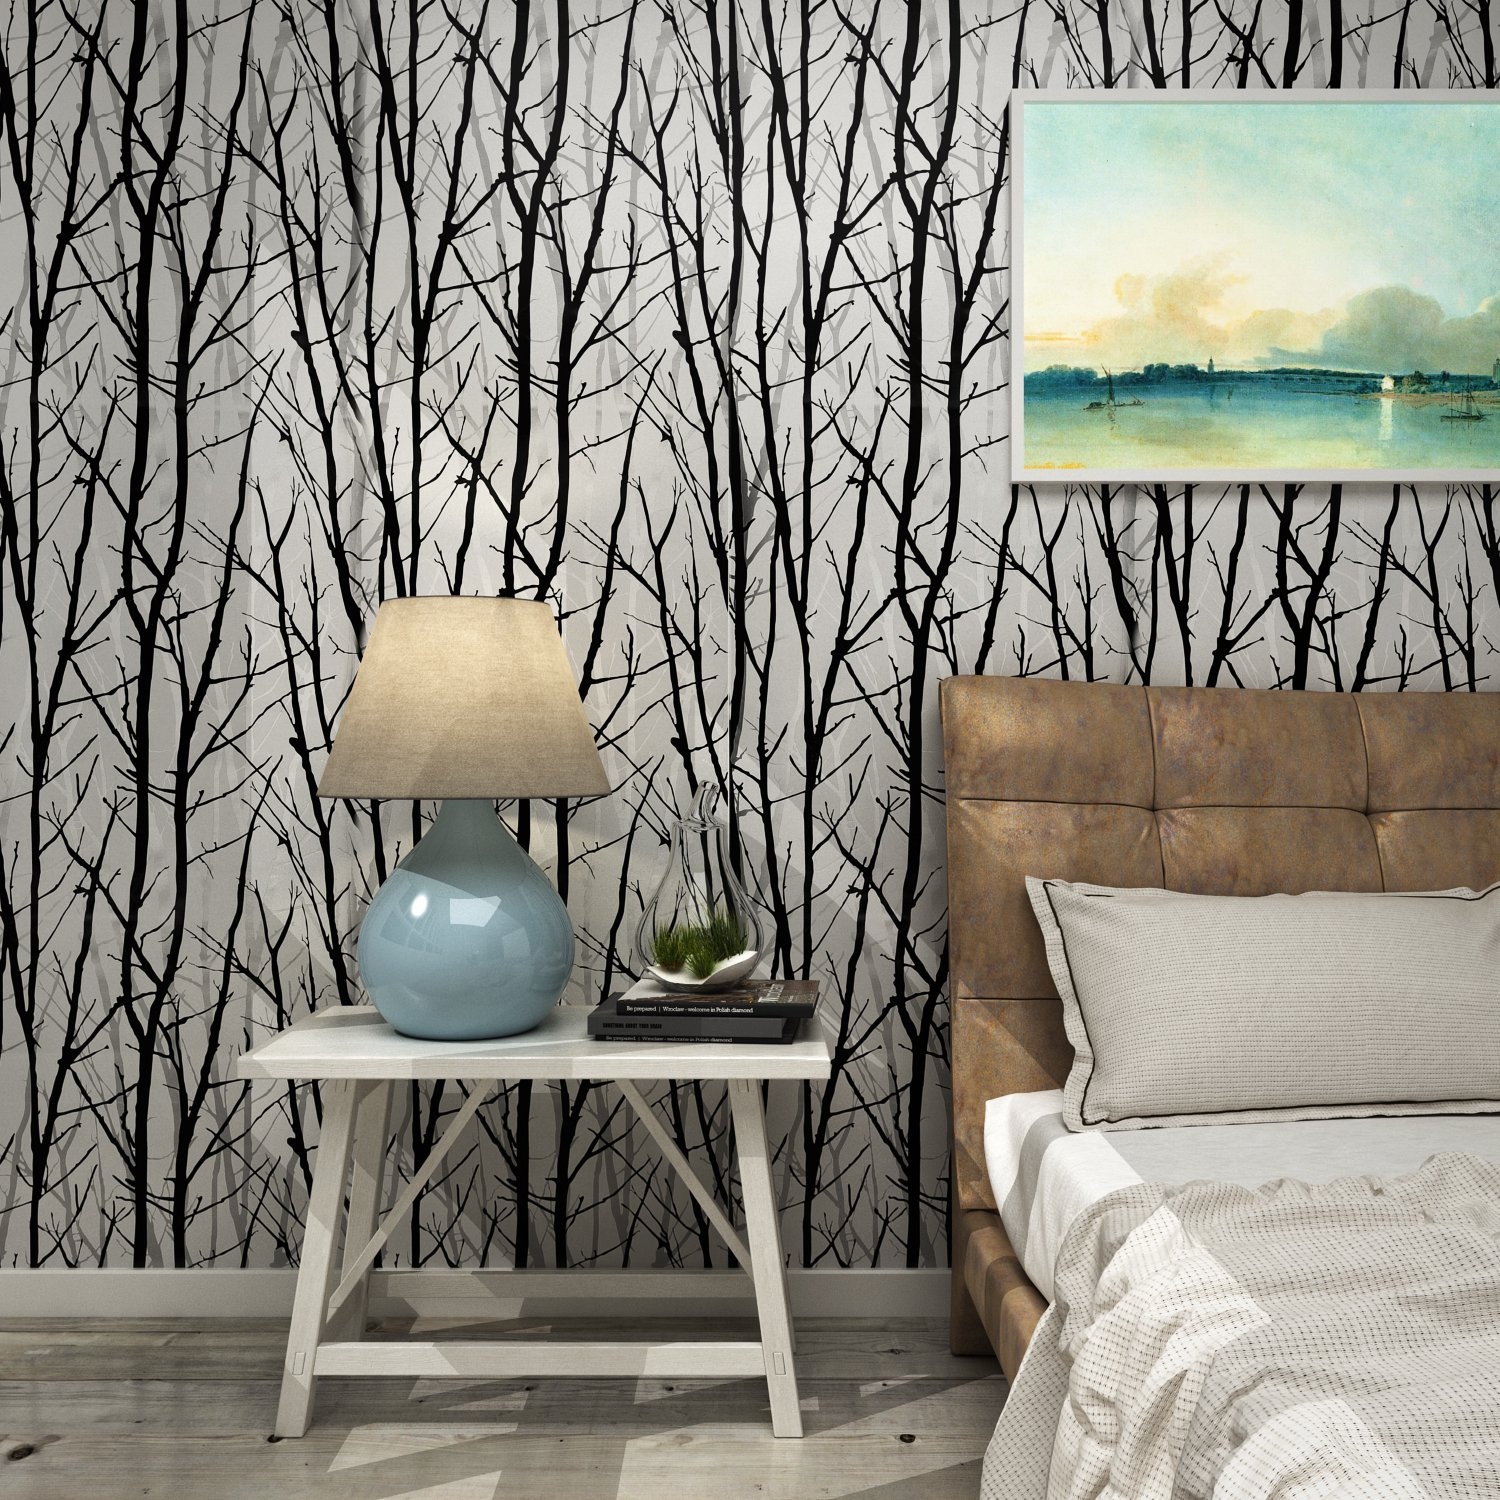 Dorfin Modern Birch Tree Wallpaper Mural Forest Peel And Stick Wallpaper Decor 57 Square Feet Buy Online In Lebanon Dorfin Products In Lebanon See Prices Reviews And Free Delivery Over Us 70 00 Desertcart